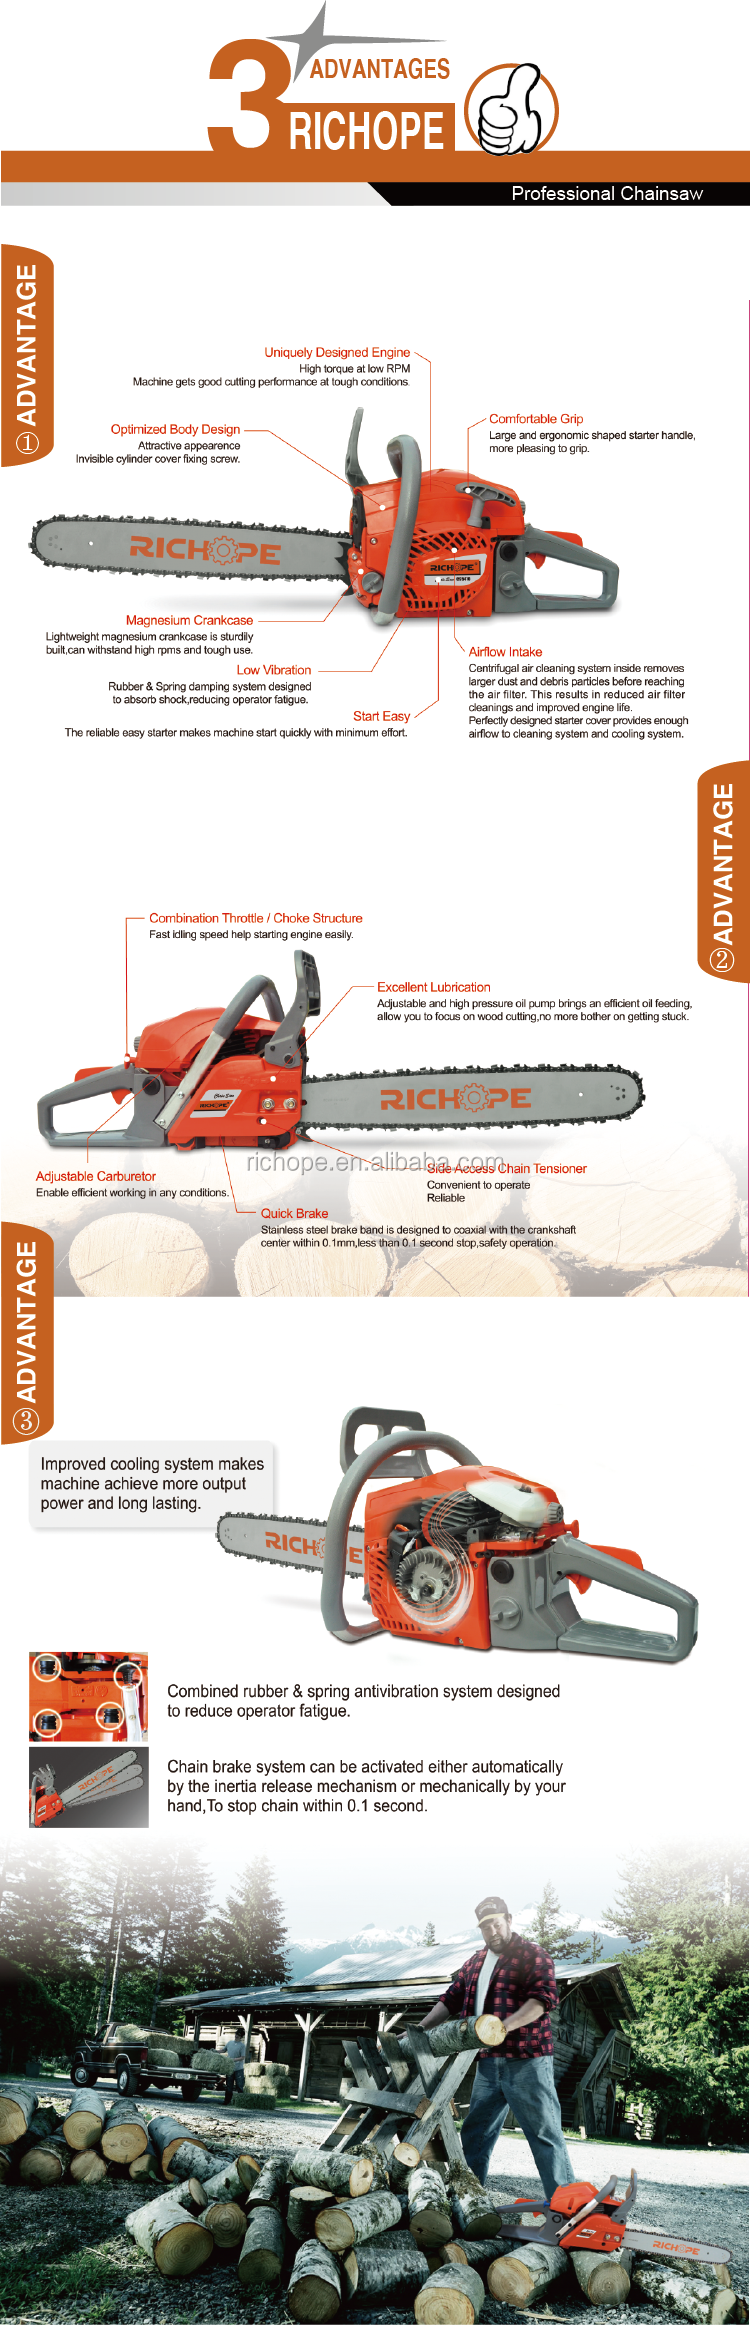 Echo Cs410 Good Quality Chainsaw With Original Walbro Carburetor Richope  Cs4010 - Buy Chain Saw Product on Alibaba com